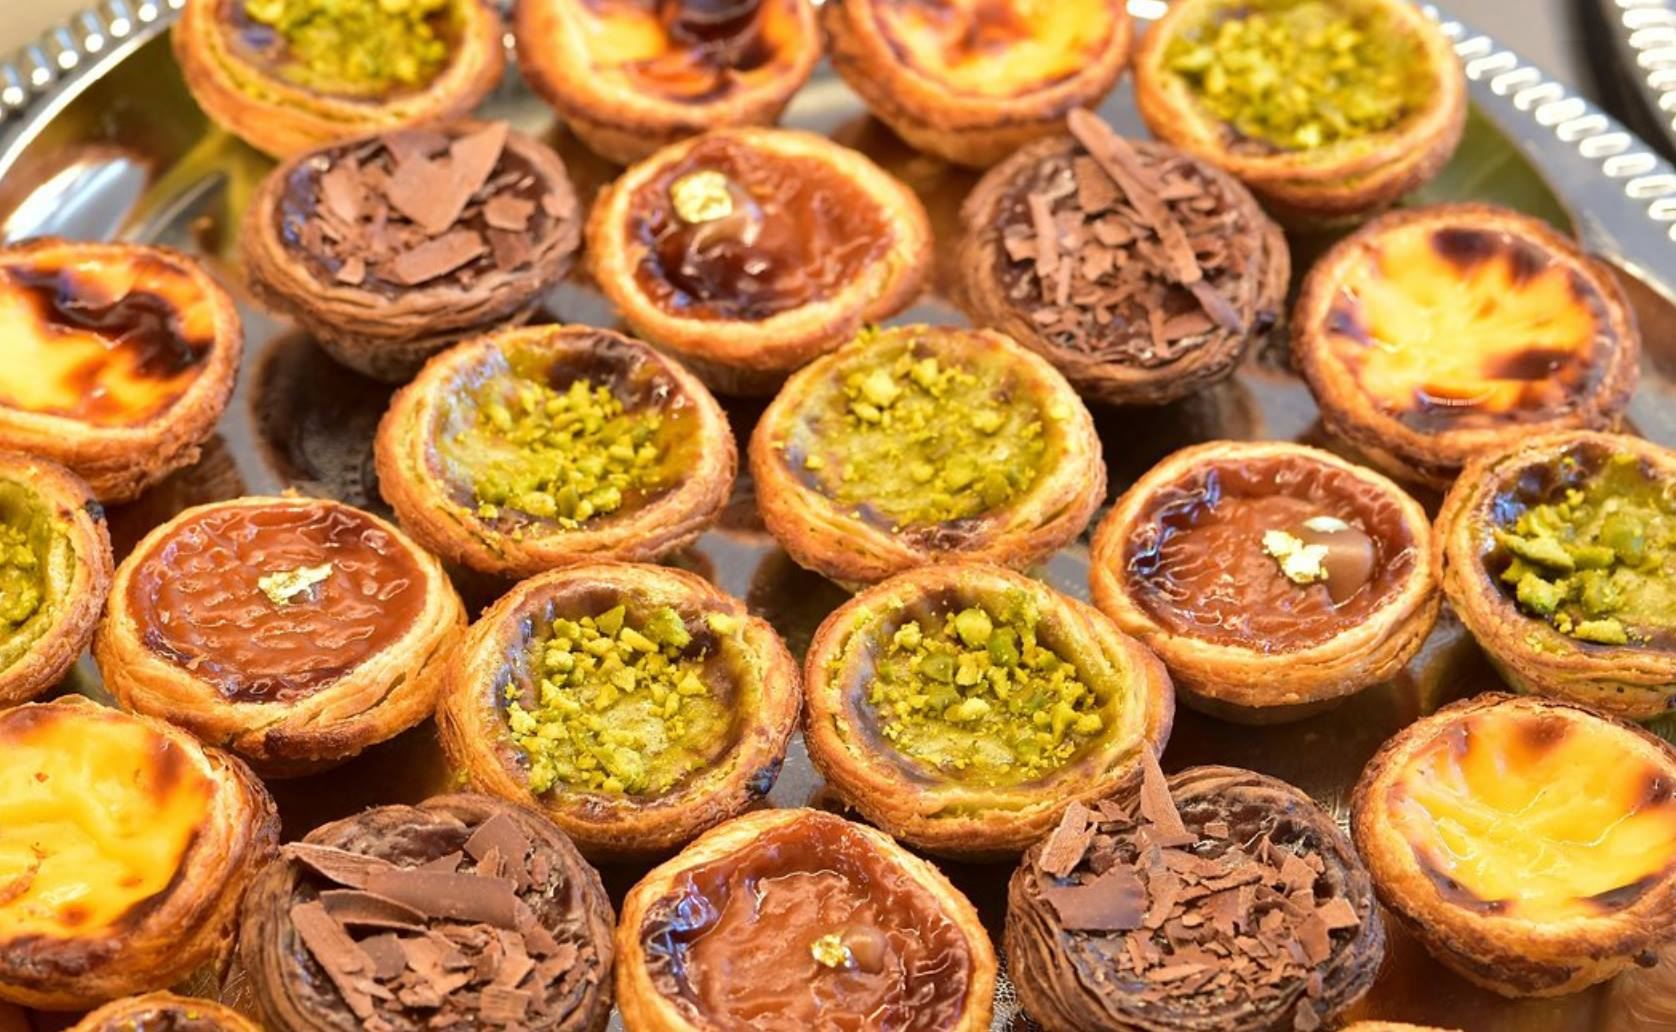 Pistachio - Chocolate - Traditional Natas from Confeitaria Nacional - Lisbon